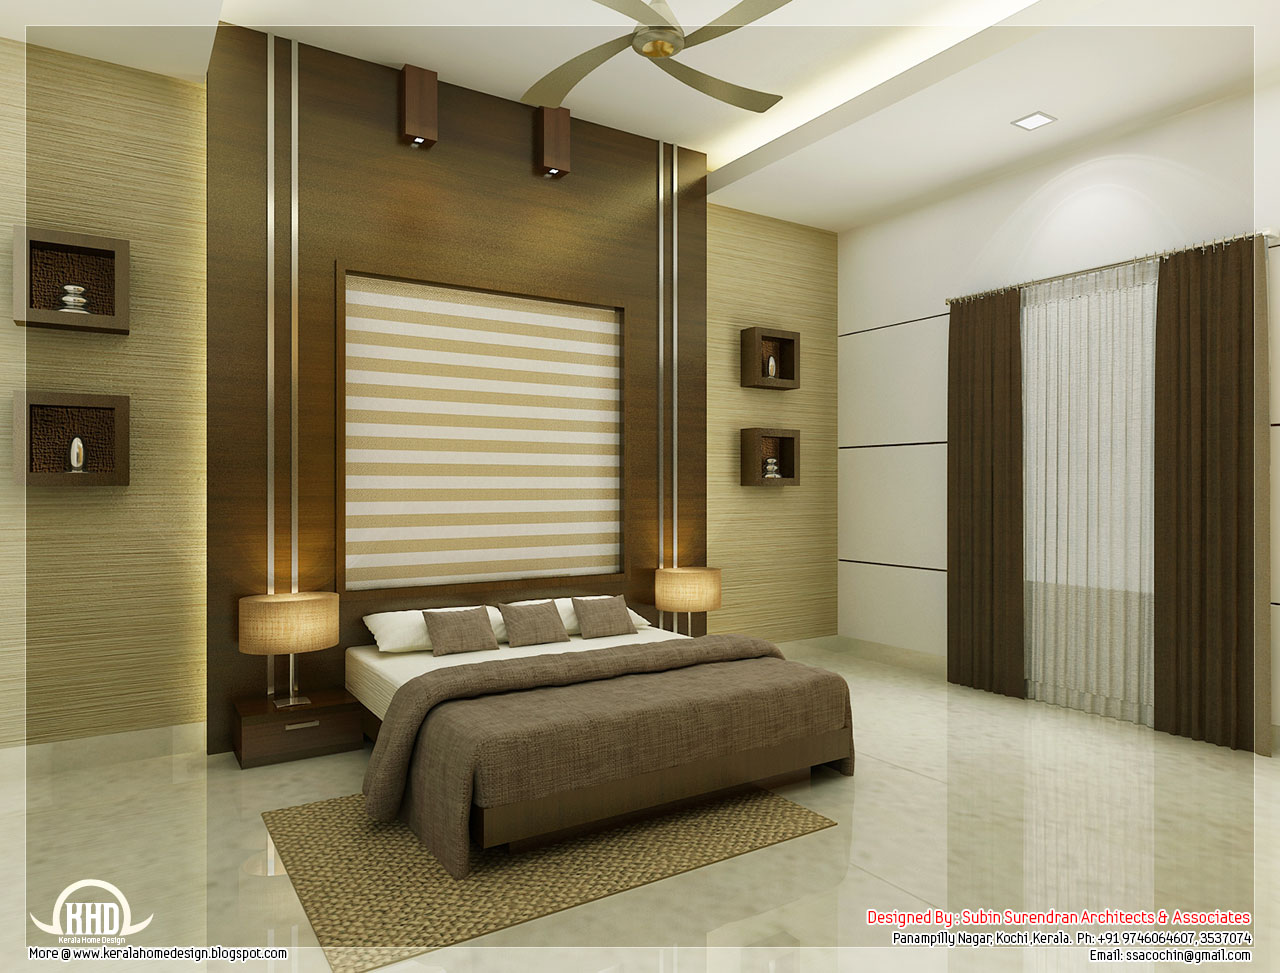 Beautiful bedroom interior designs kerala home design for 3 bedroom interior design